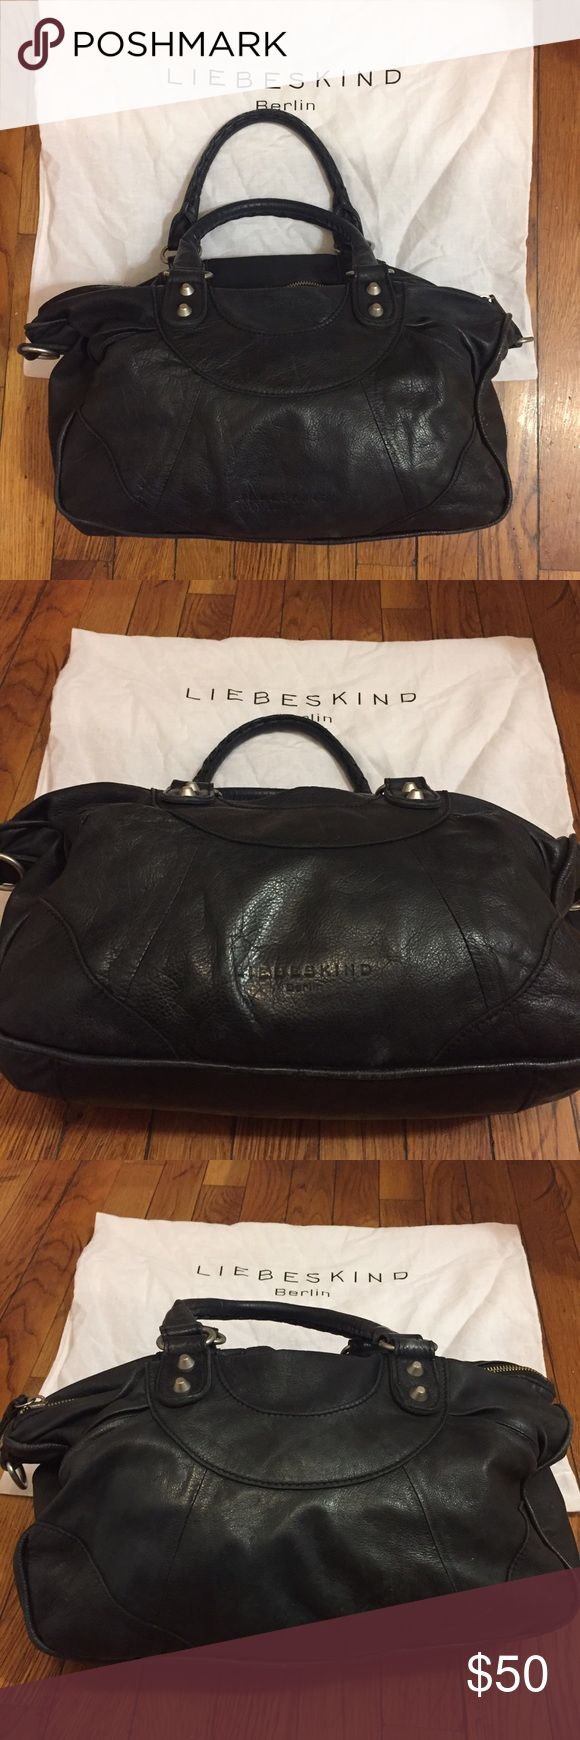 Soft Leather Bag!! Super Soft, black leather Liebskind bag in great condition! Perfect for every day use with great pocket space - comes with original dust bag. General wear on leather and inside fabric - great deal!!! Liebeskind Bags